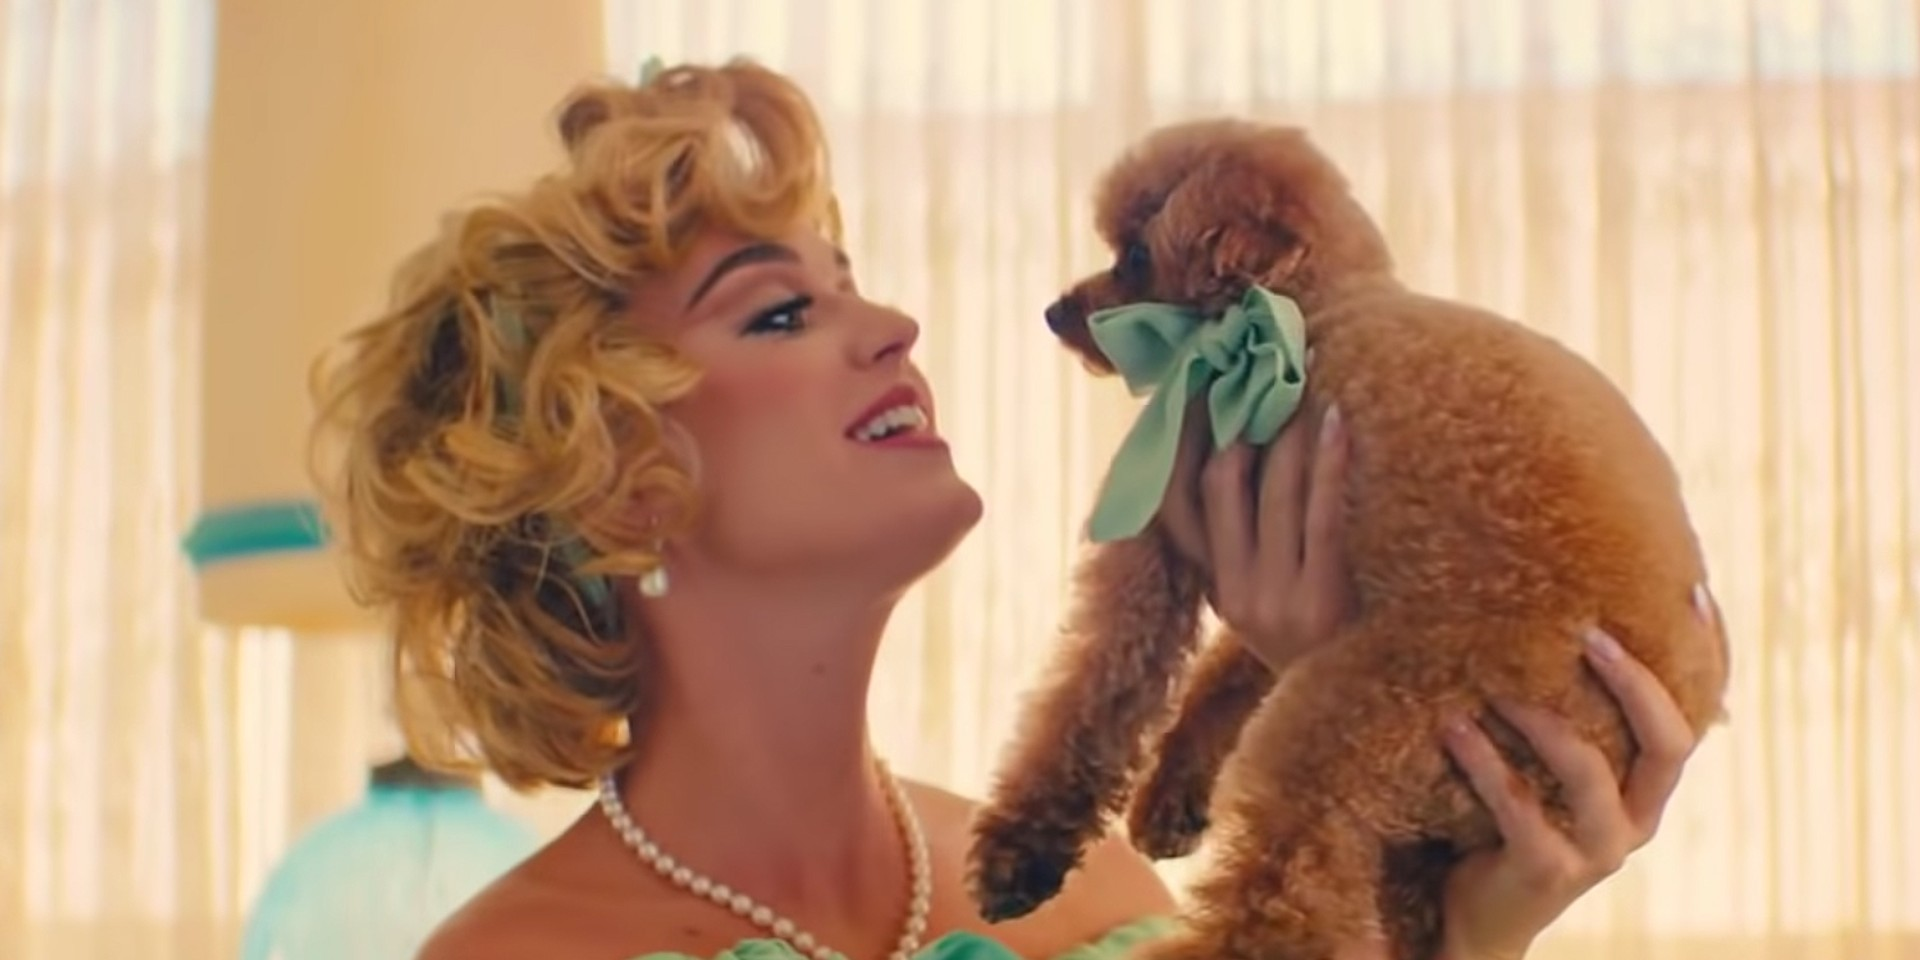 Katy Perry releases adorable new video for 'Small Talk' – watch